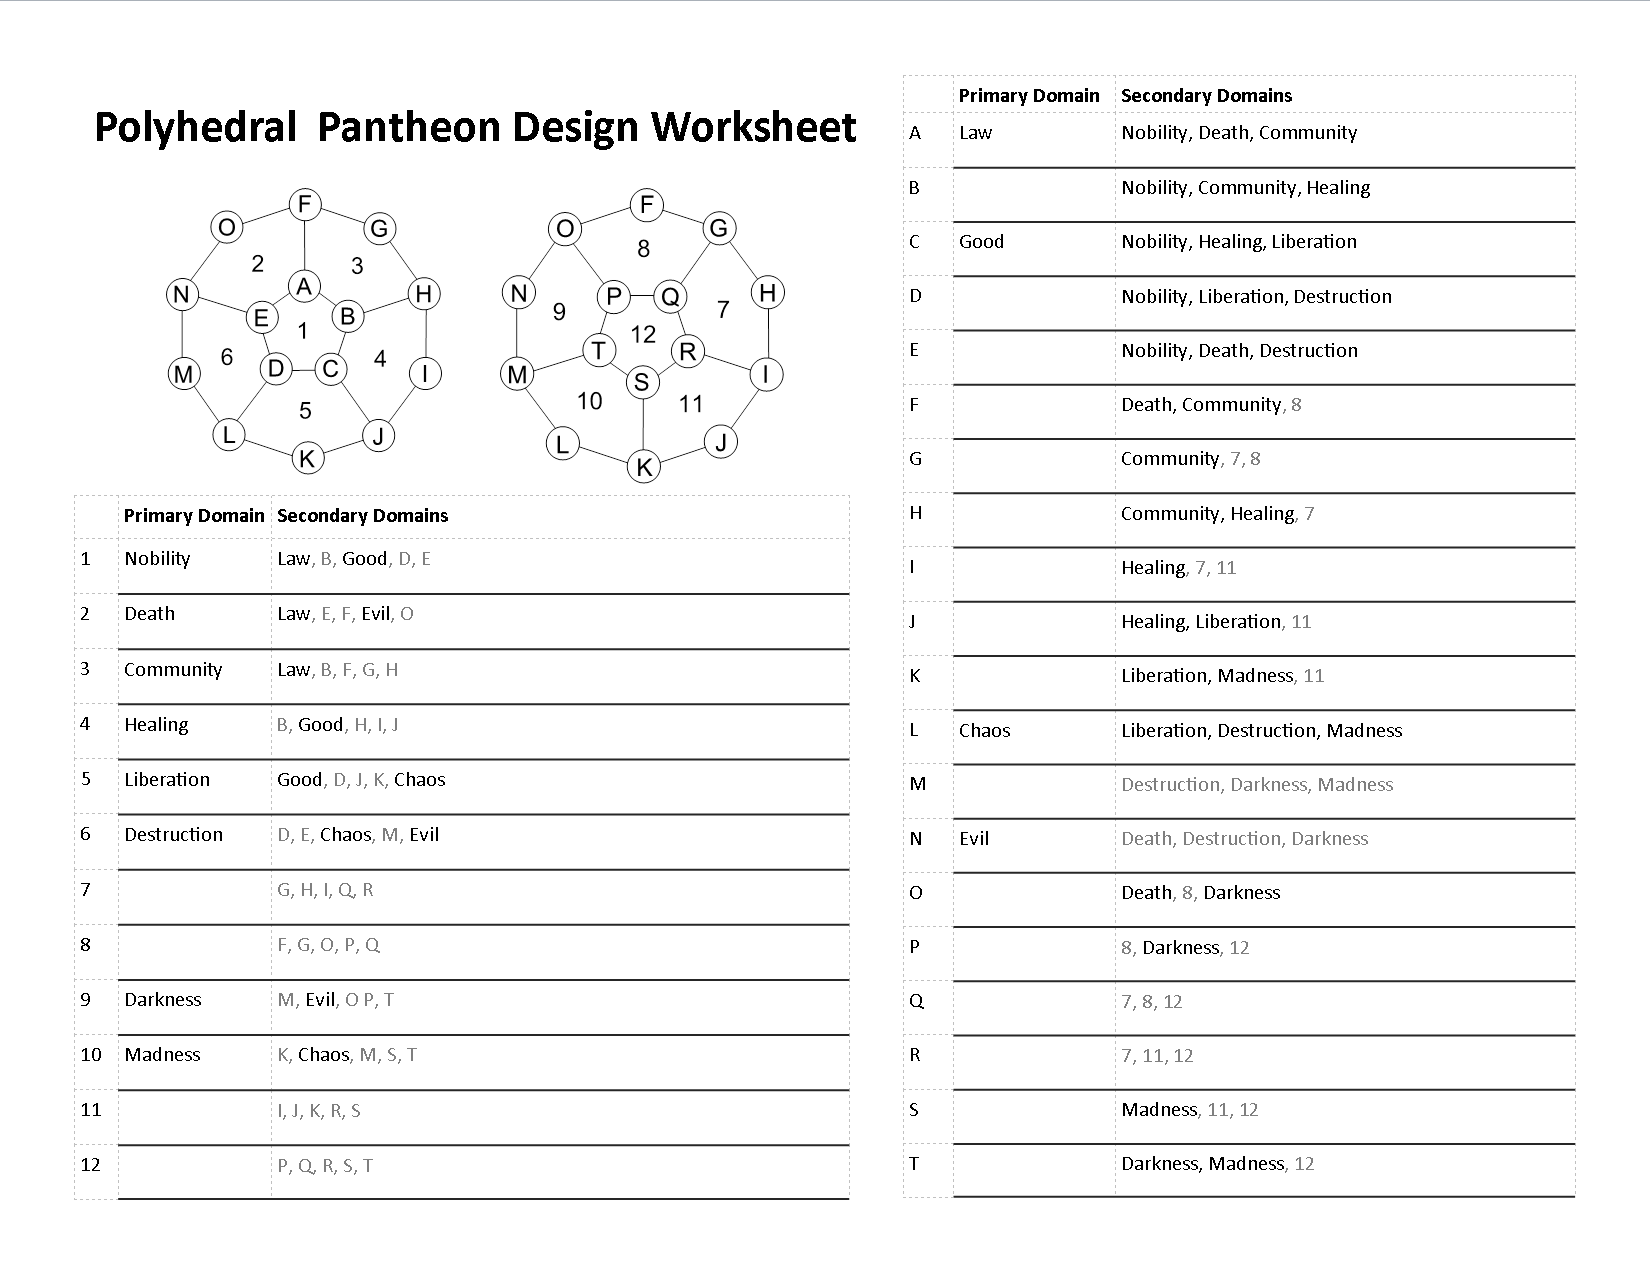 Worksheets Core Values Worksheet polyhedral pantheons applied in my campaign step 2 alignment personal domains